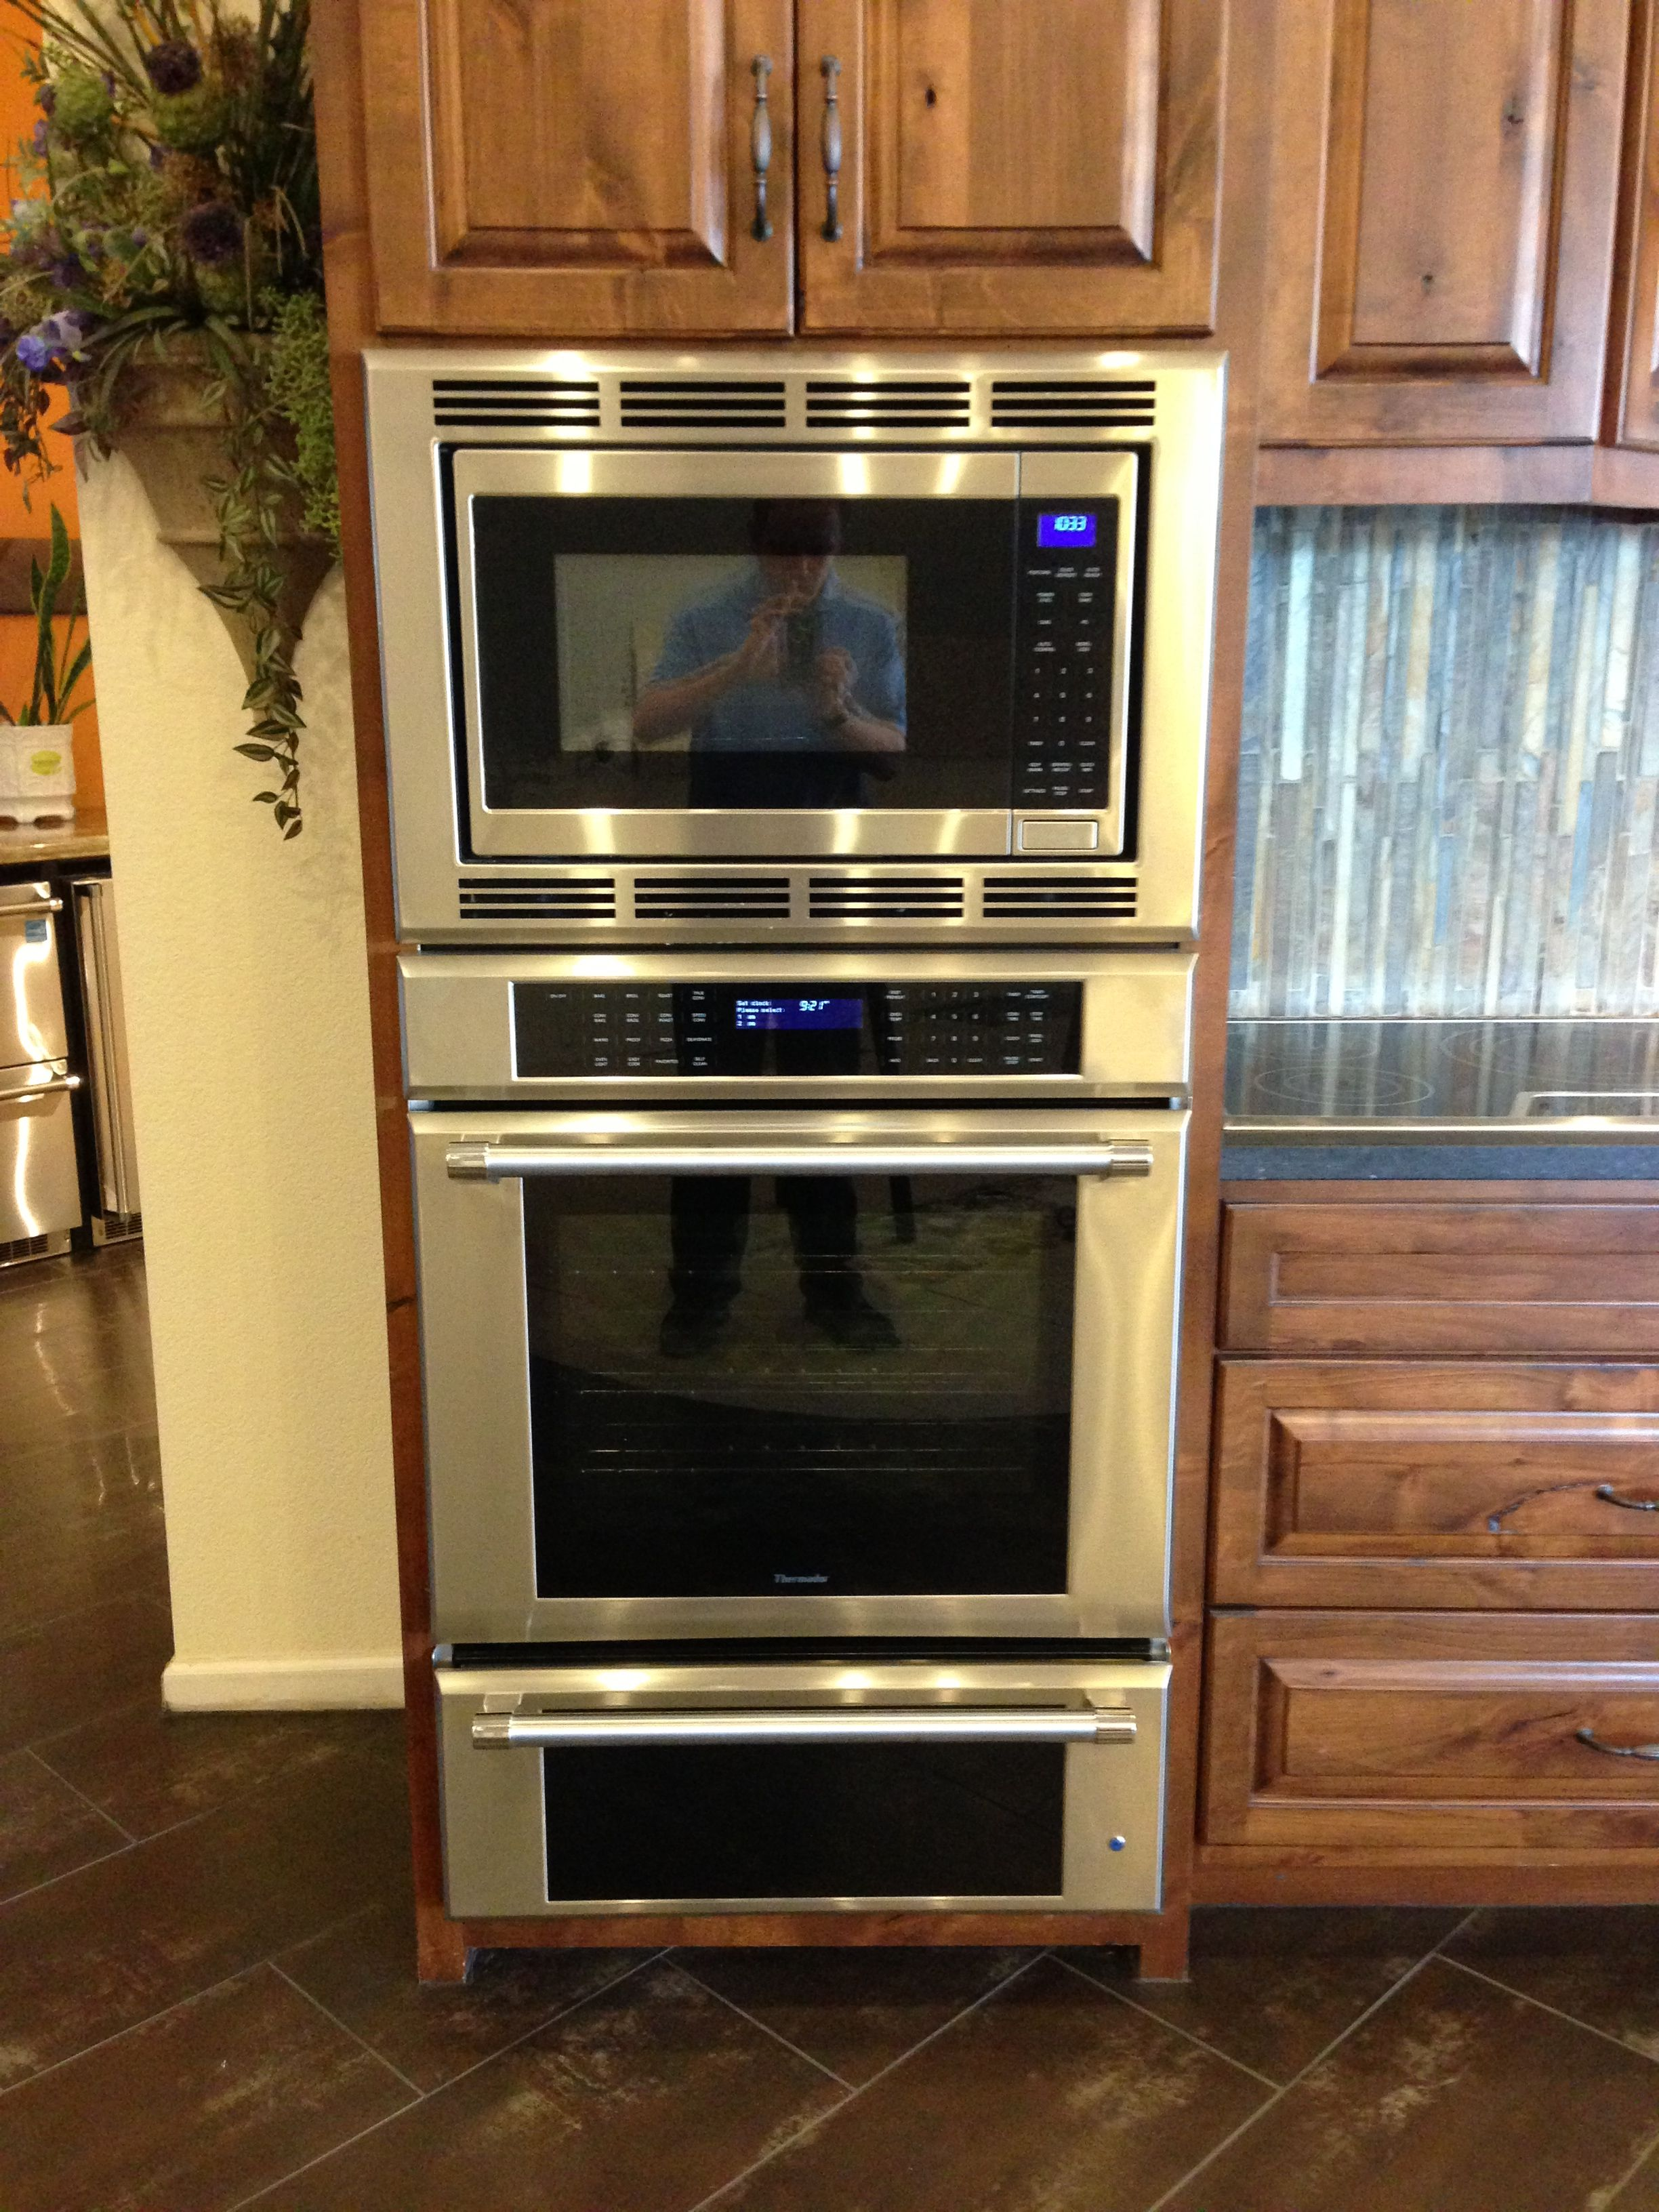 Thermador Microwave Oven Bestmicrowave